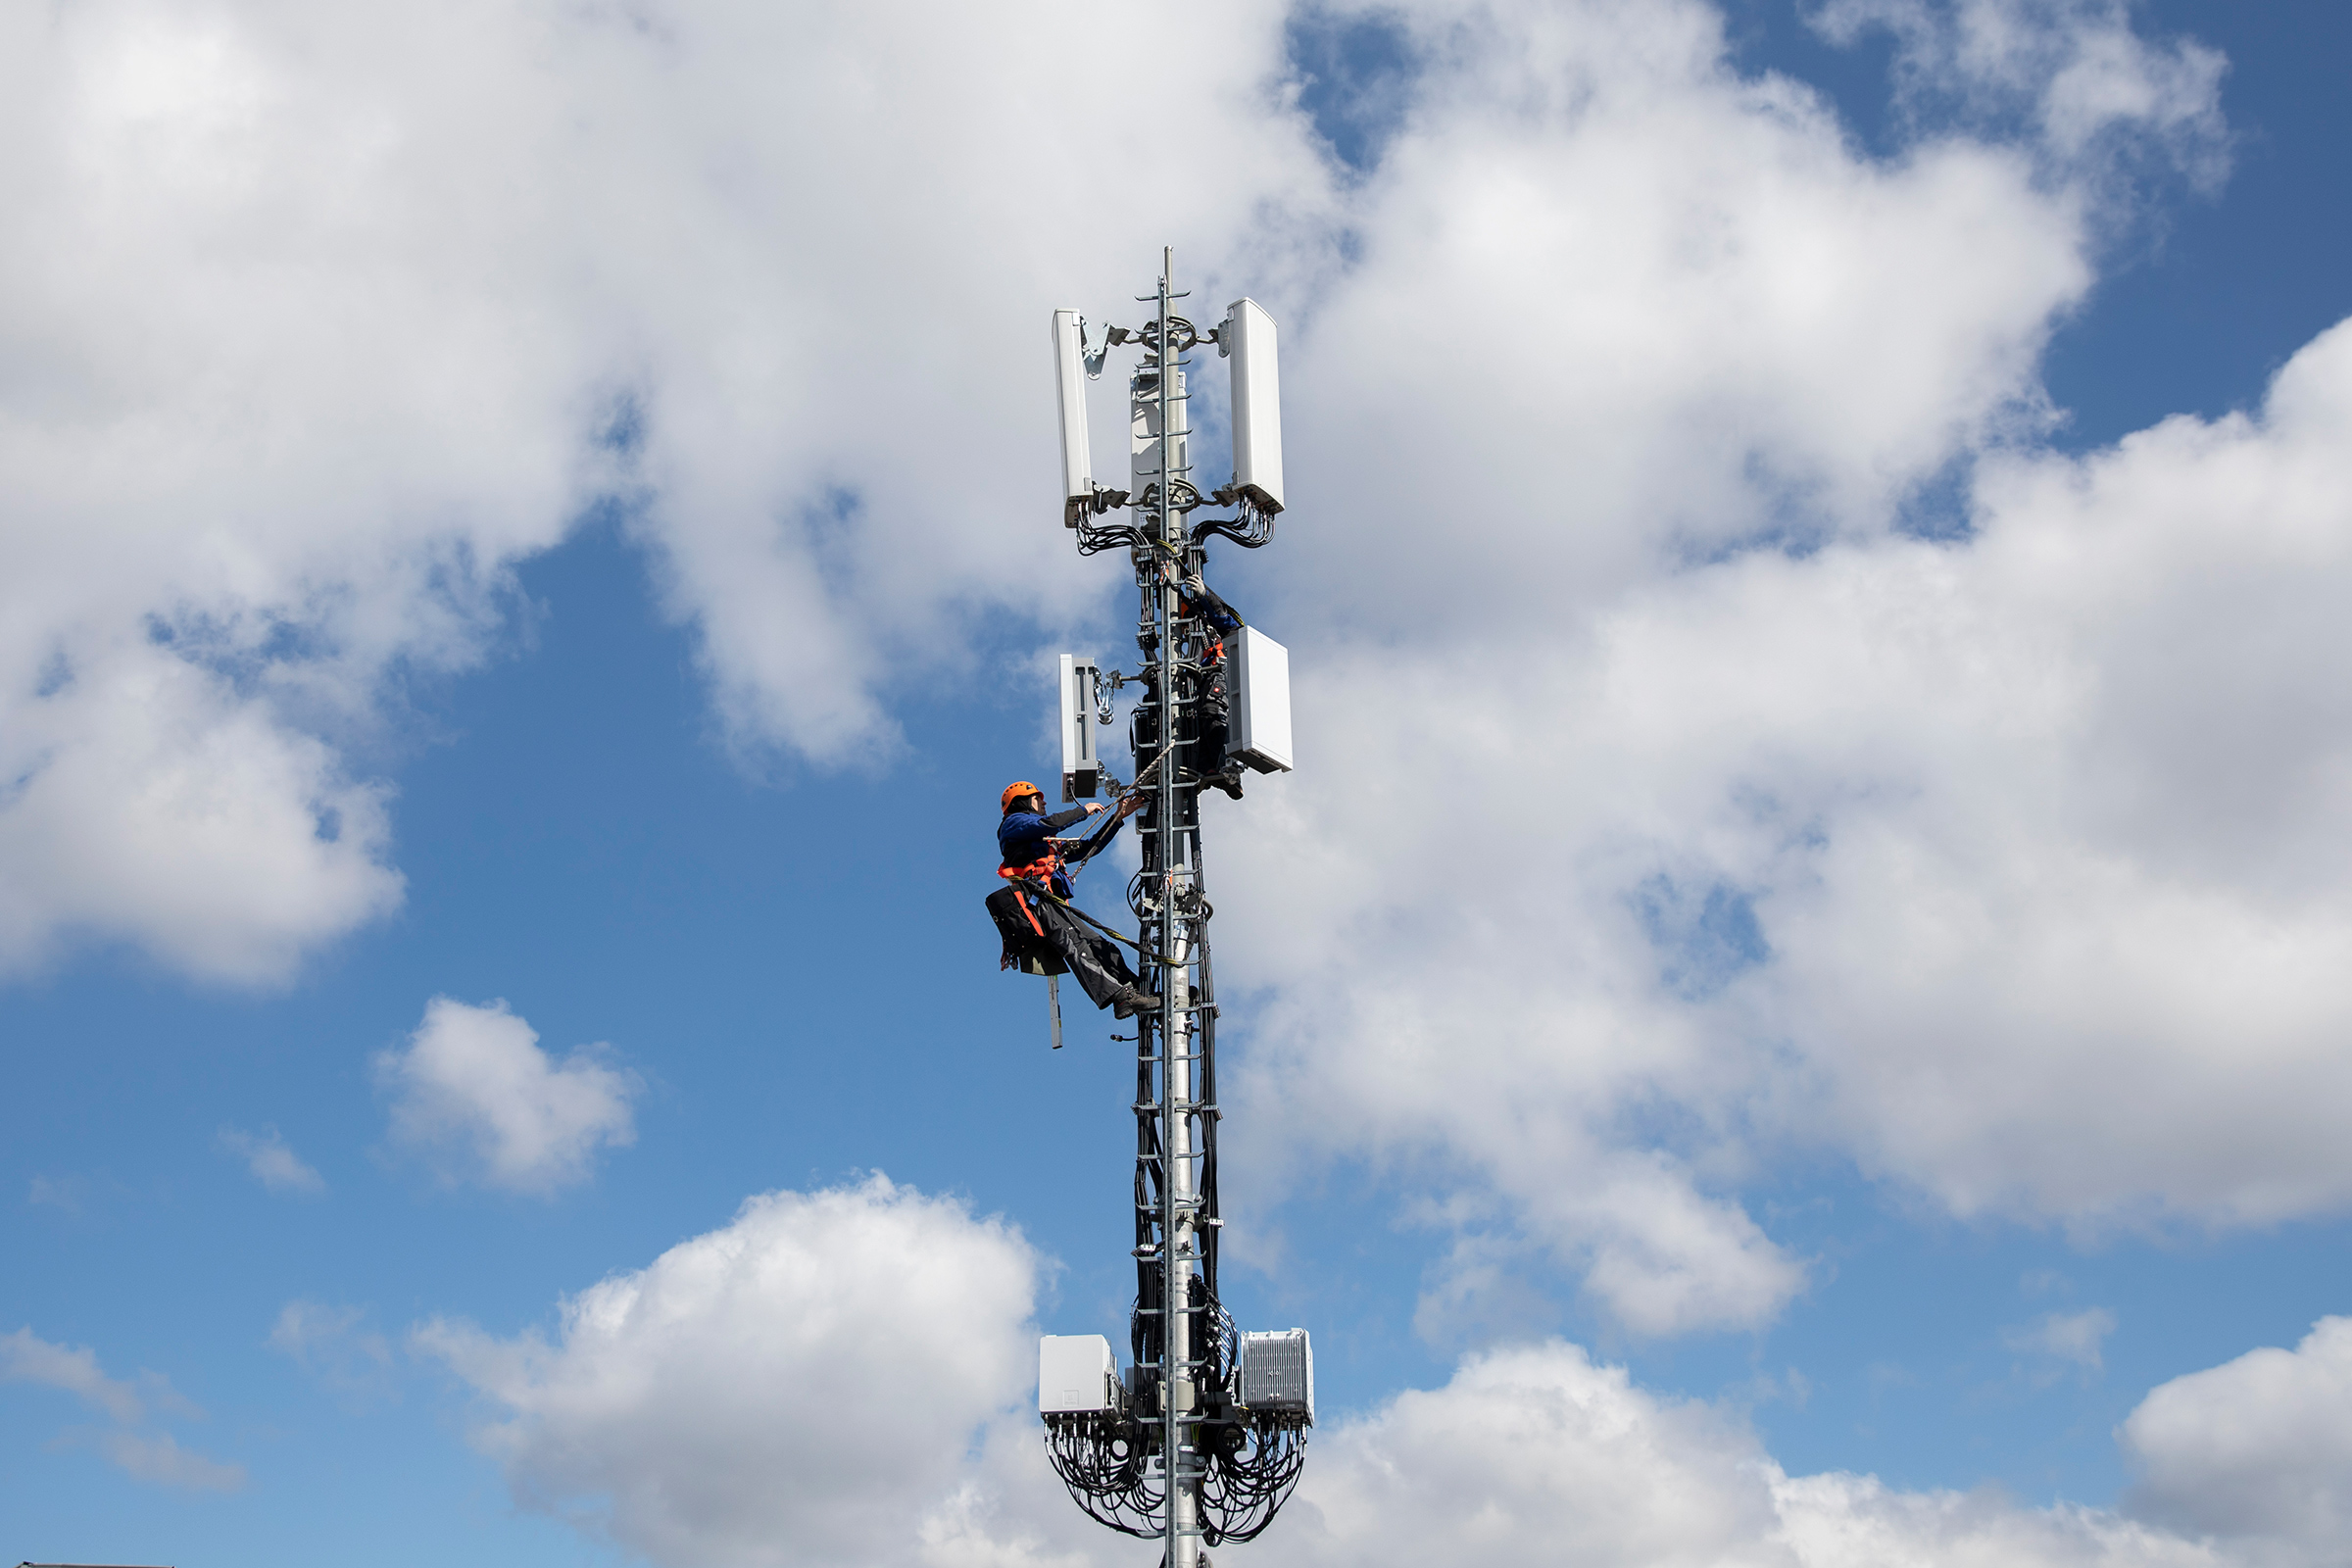 An installation of a 5G antenna in Bern, Switzerland on Mar. 26, 2019.